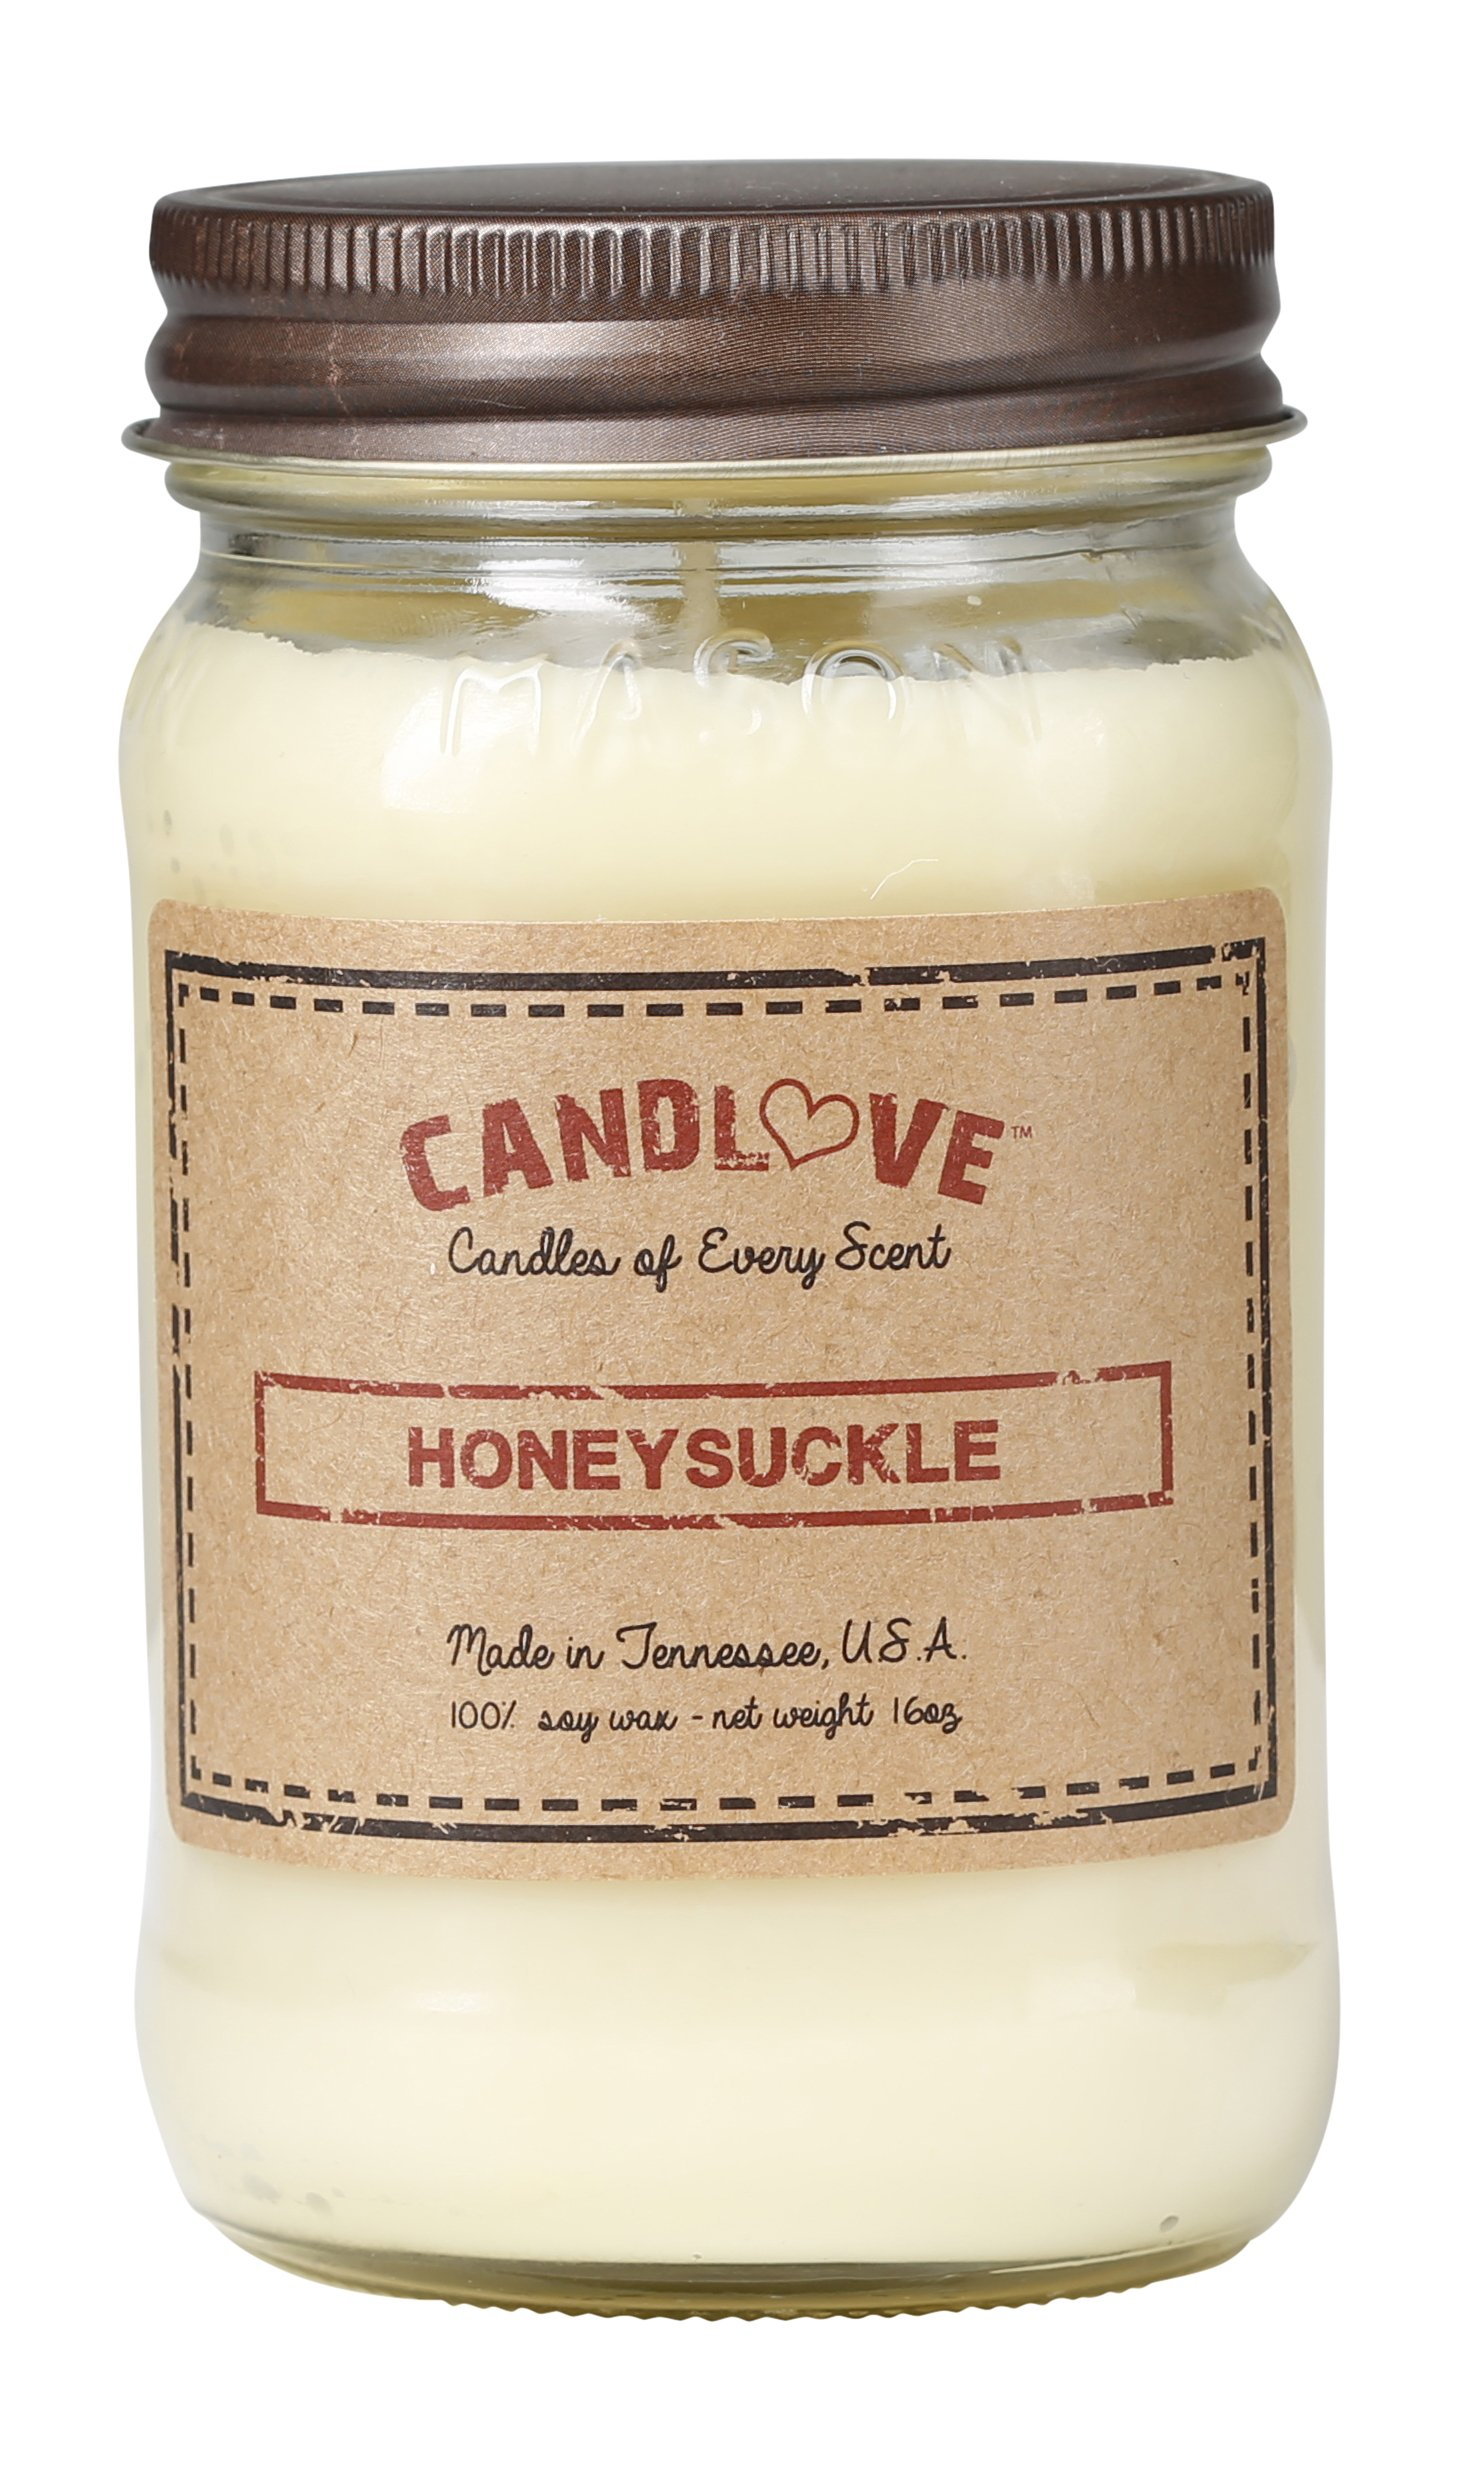 Candlove Honeysuckle Scented 16oz Mason Jar Candle 100% Soy Made in The USA - Bring your senses alive with the intoxicating and sweet smell of honeysuckle. ECO-FRIENDLY, SOY PRODUCT. Completely renewable, these candles are made using 100% soy wax – a vegetable wax made from the oil of soybeans. In addition to sustainability, these eco-friendly soy candles will burn cleanly and slowly. Made in USA. HUGE VARIETY OF SCENTS. To accommodate everyone's needs, Candlelove Candles are made in almost every scent imaginable. With so many options to choose from – floral, food, aromatic, novelty, fruity and funny scents – you're sure to find just the right one. - living-room-decor, living-room, candles - 81Vlfw3AjXL -